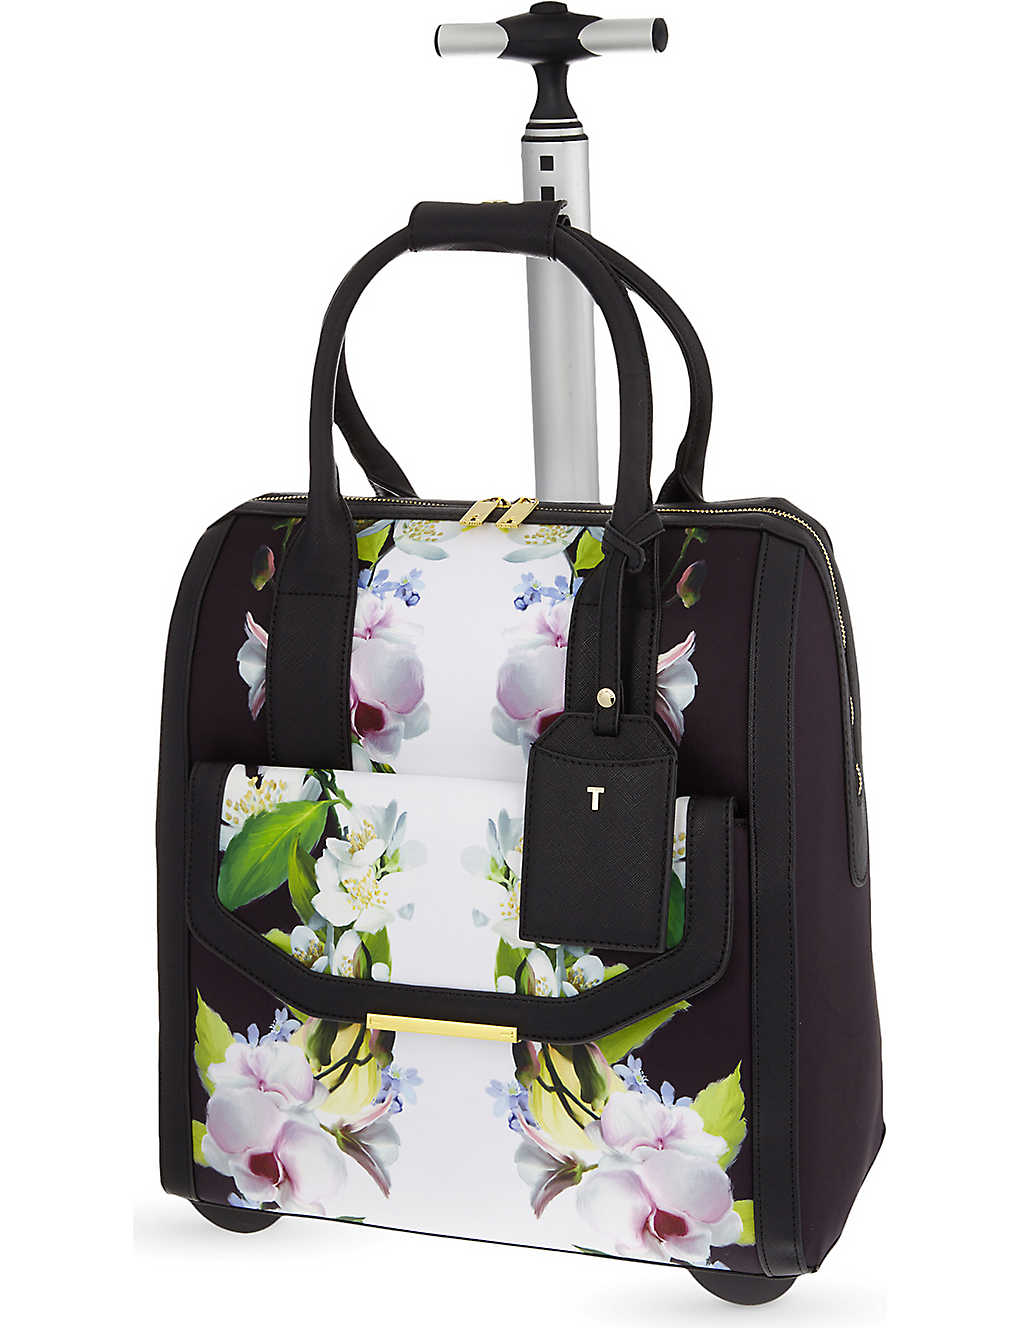 0a5849a2a57 TED BAKER - Manala Forget Me Not two-wheel travel bag | Selfridges.com